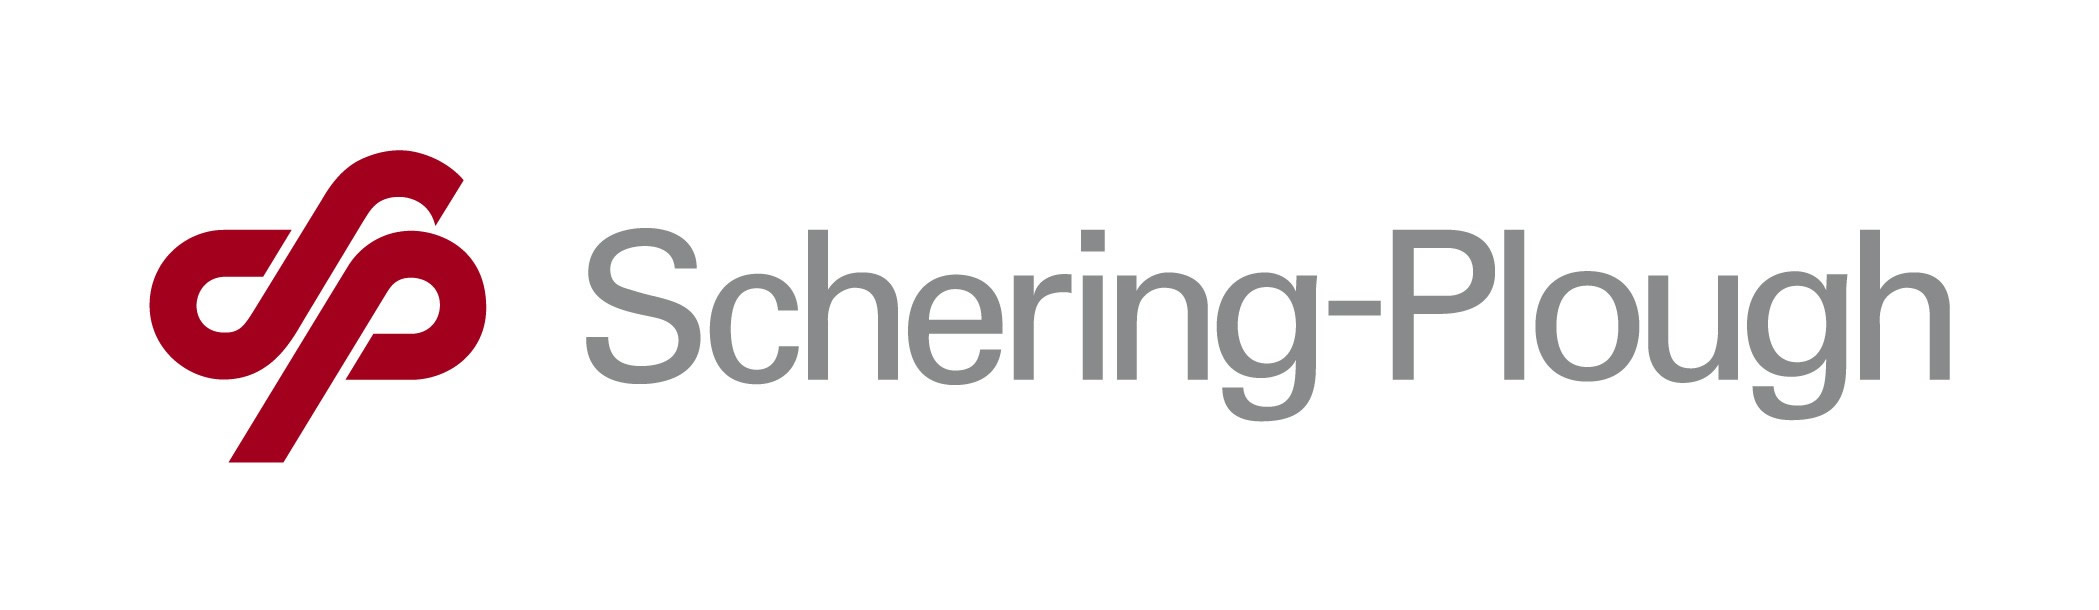 Schering-Plough Logo photo - 1